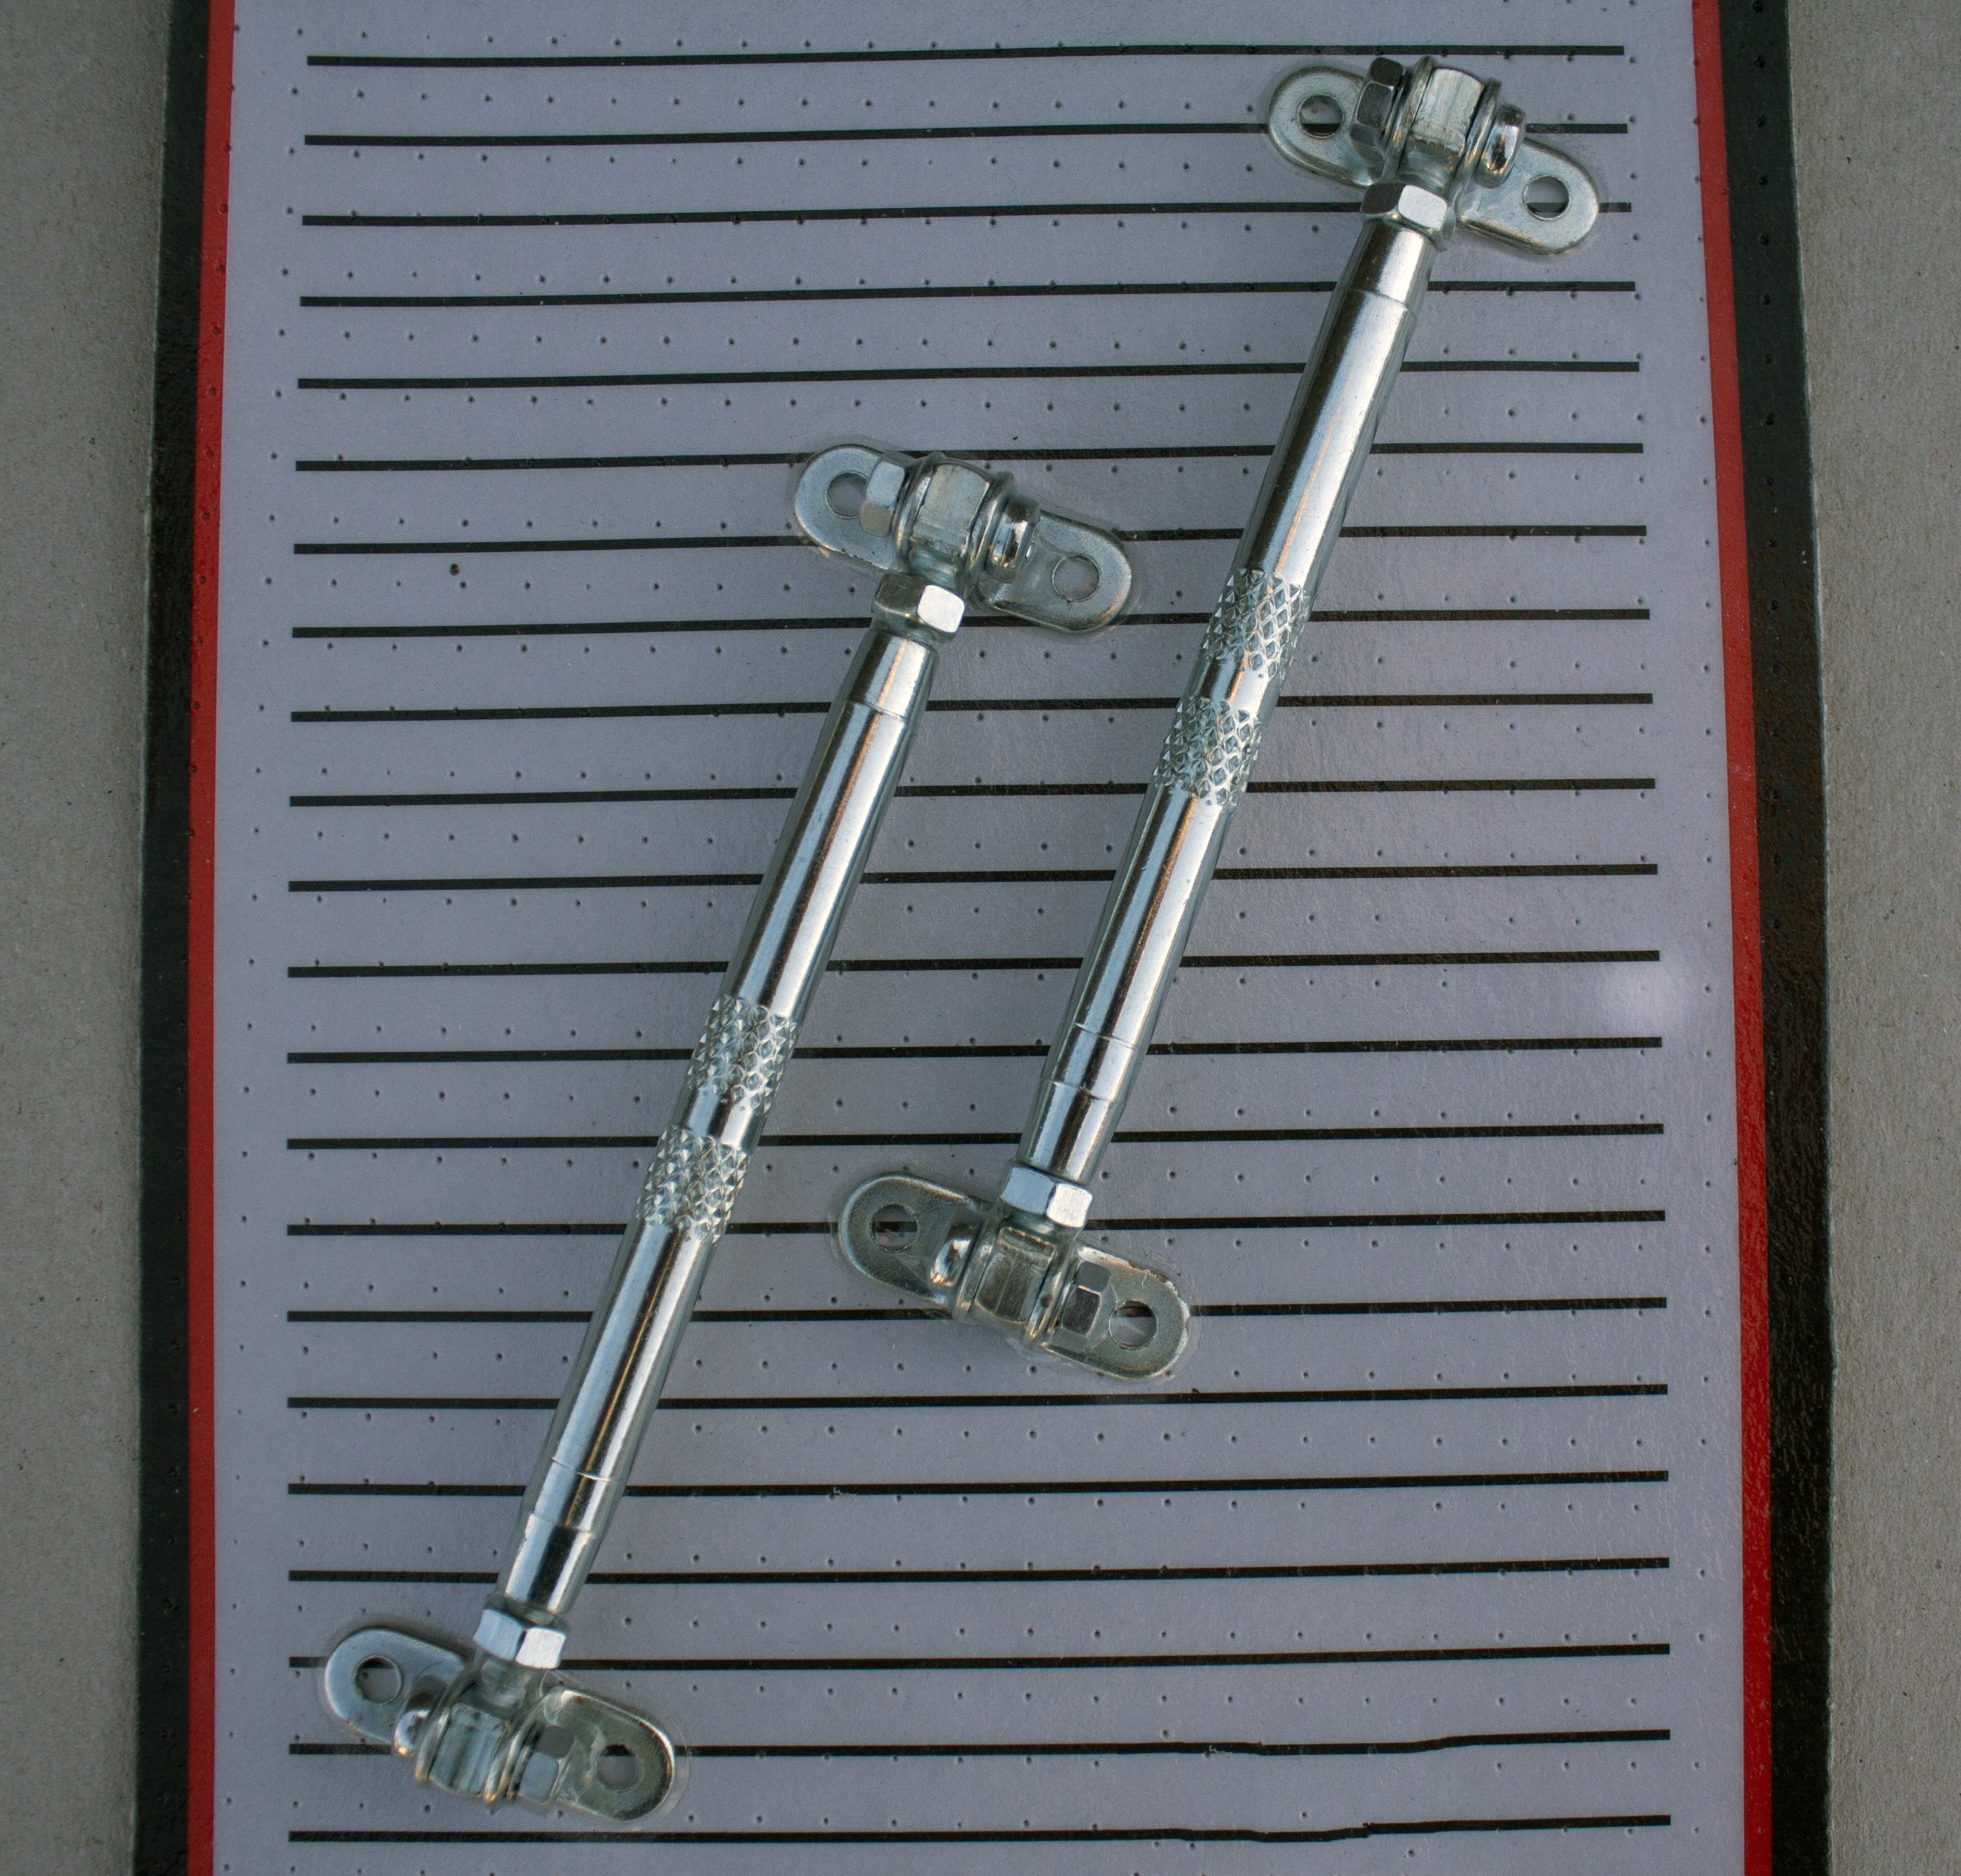 Adjustable Lamp Steady Bars